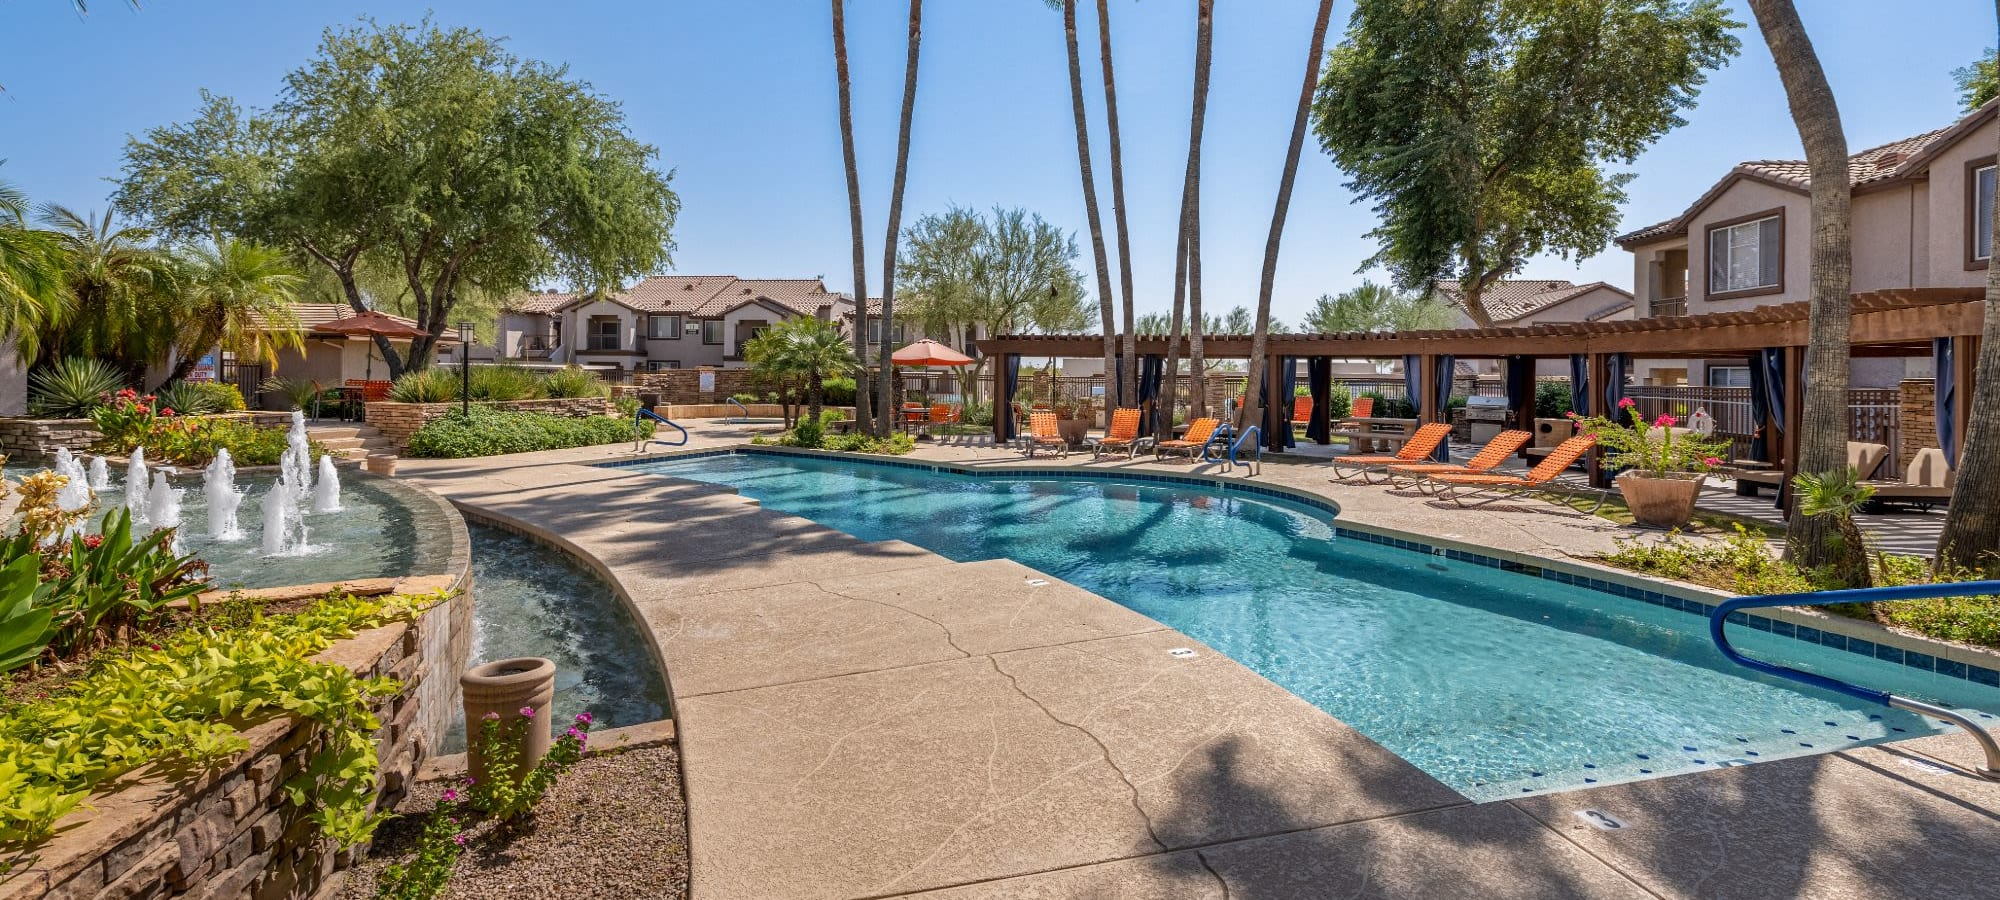 Apply to live at Azure Creek in Cave Creek, Arizona